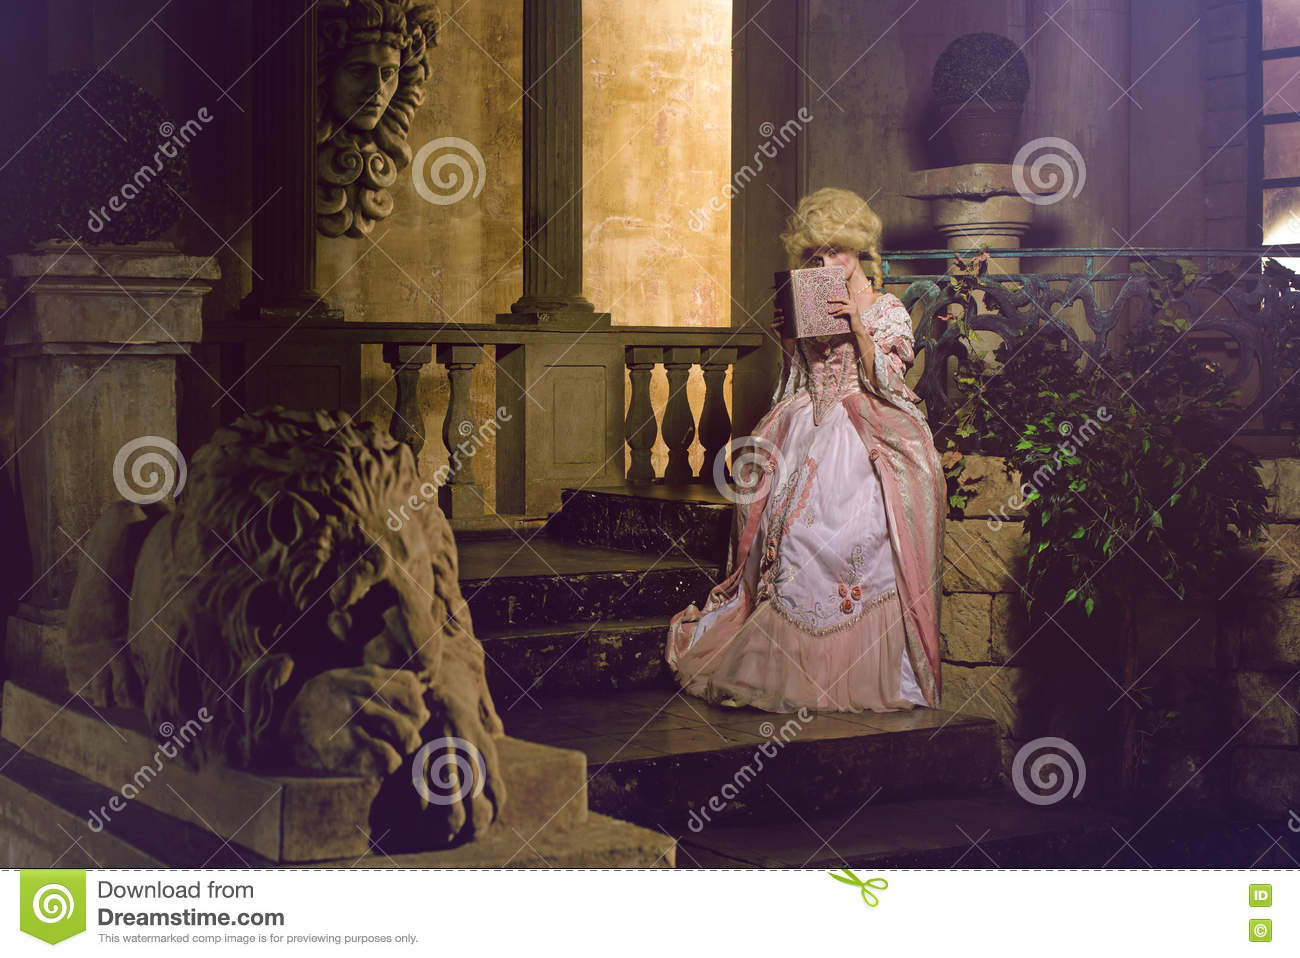 Young woman in eighteenth century image posing in vintage exterior